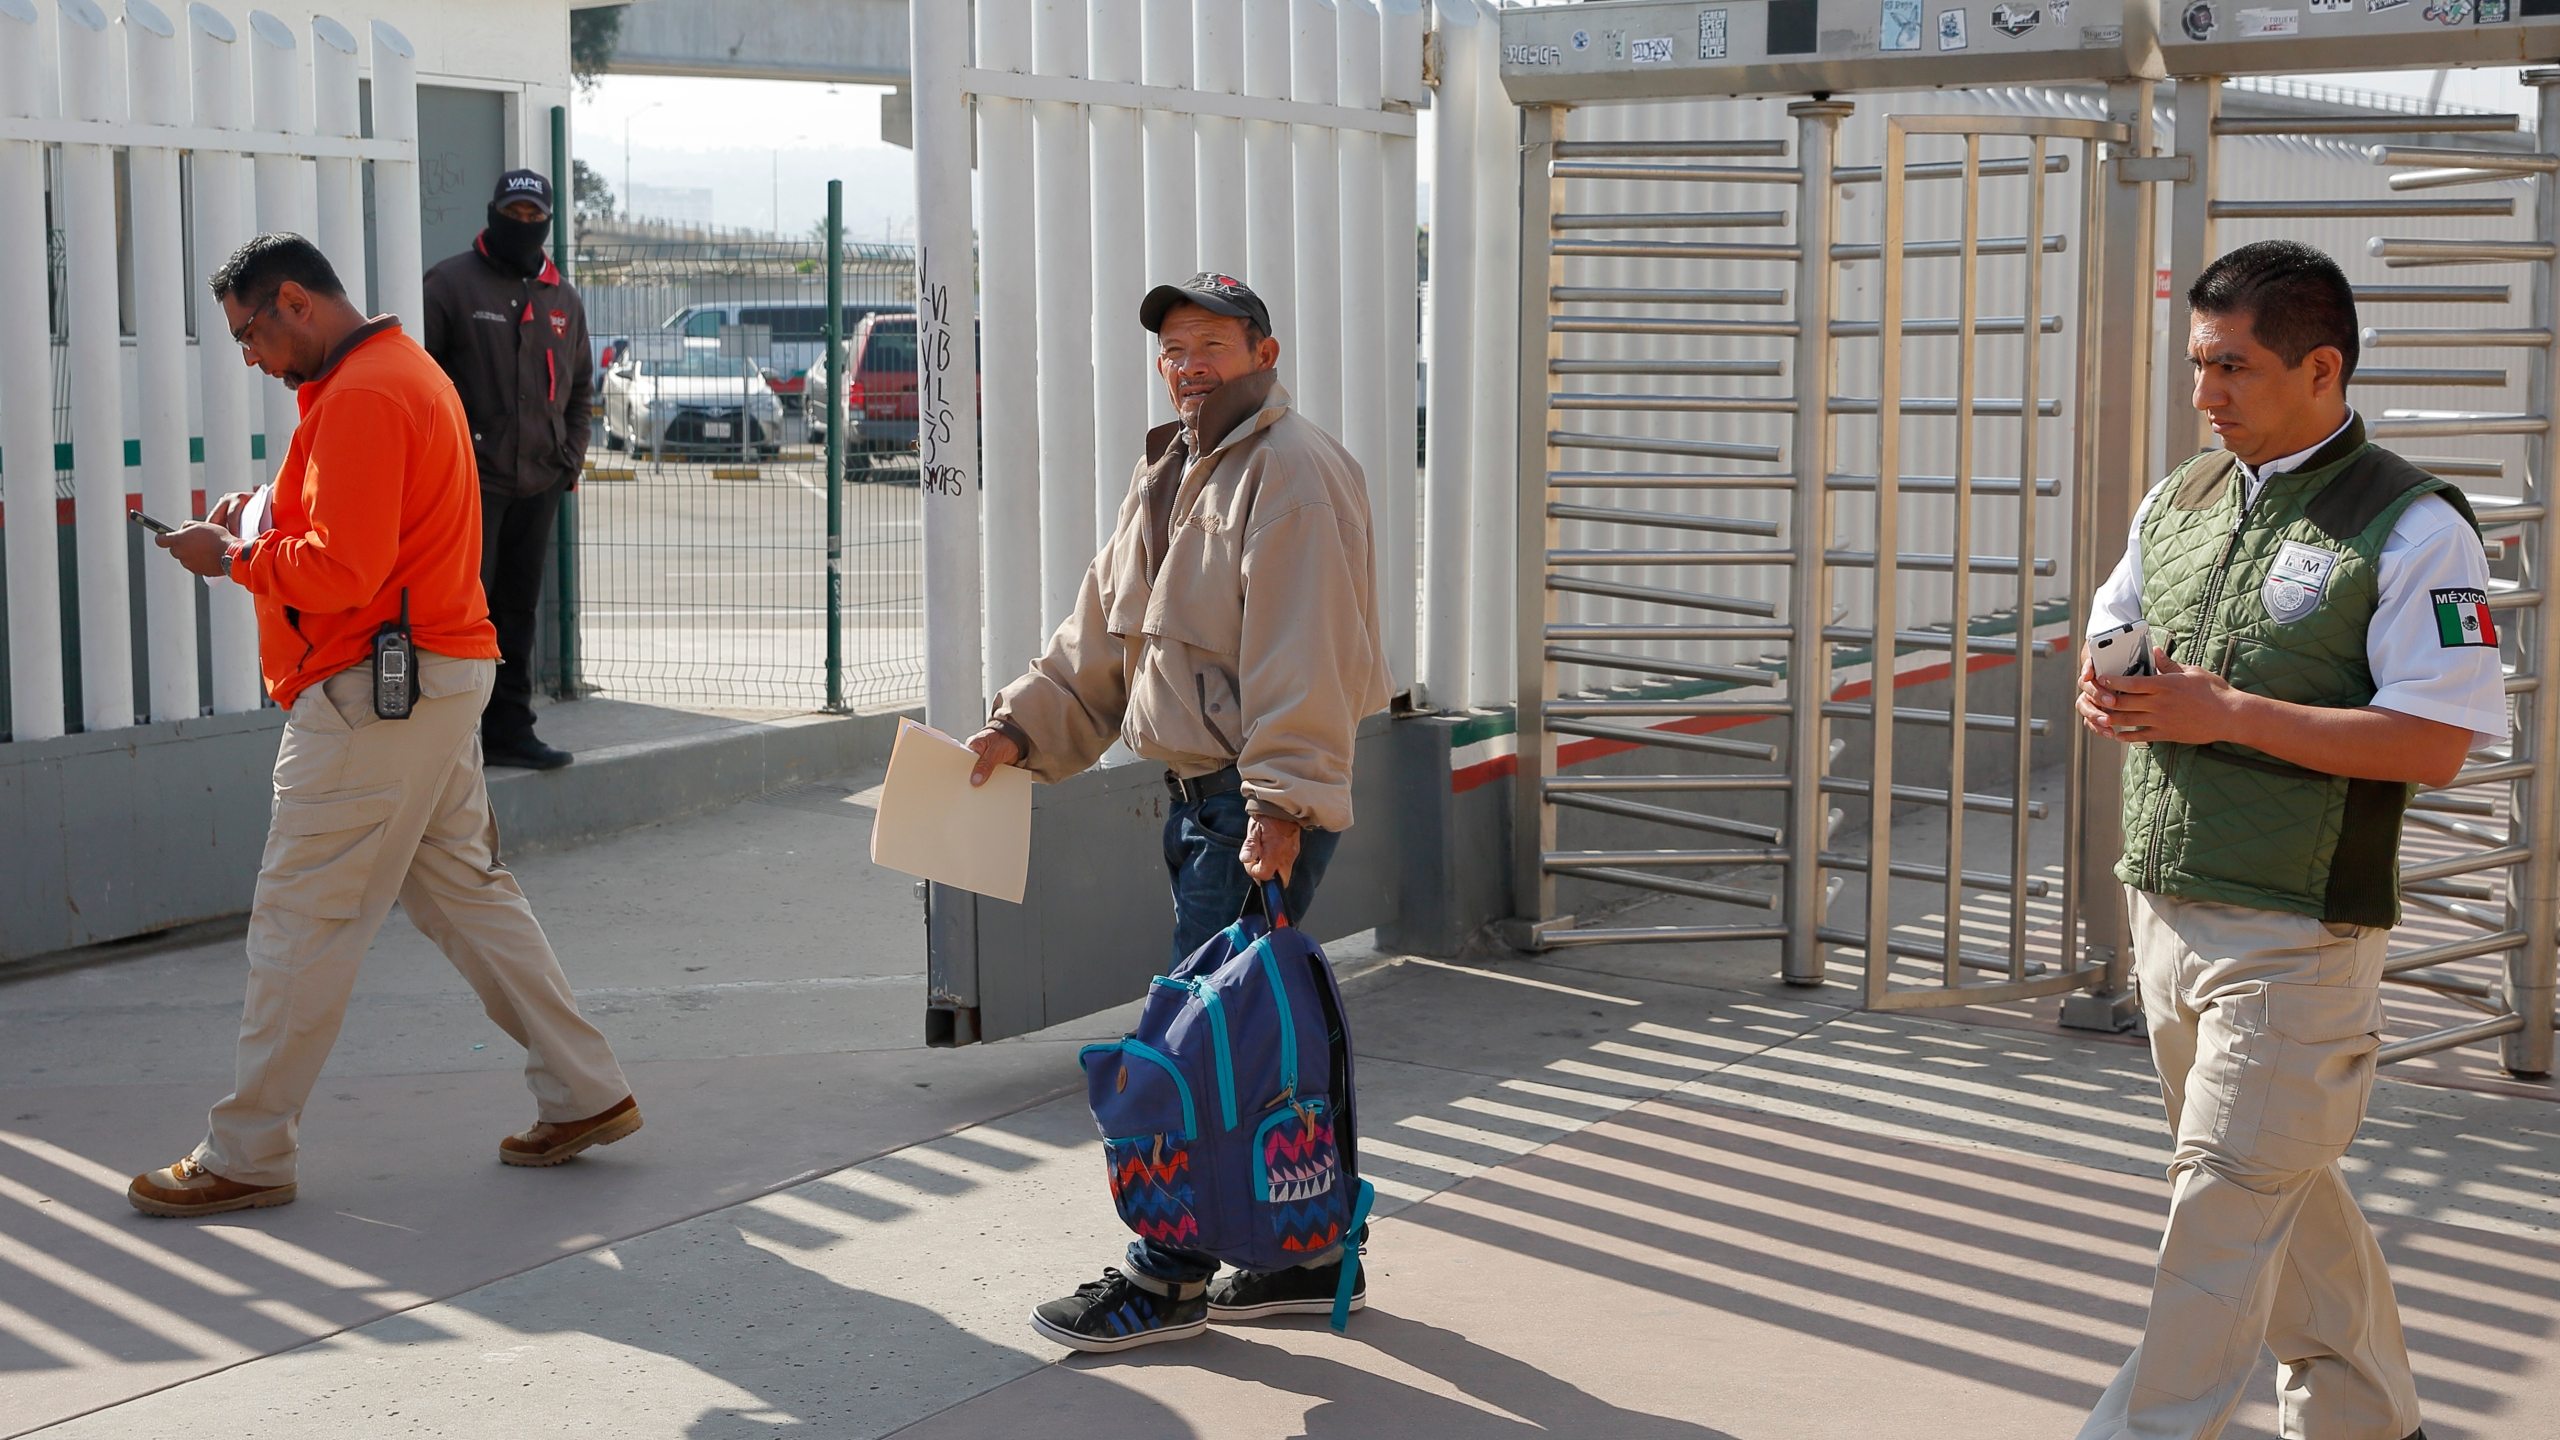 """In this Jan. 29, 2019, file photo, migrant Carlos Catarldo Gomez, of Honduras, center, is escorted by Mexican officials after leaving the U.S., the first person returned to Mexico to wait for his asylum trial date as part of a new program """"Remain In Mexico"""" policy in Tijuana, Mexico. The Supreme Court has ordered the reinstatement of the policy, saying that the Biden administration likely violated federal law by trying to end the Trump-era program that forces people to wait in Mexico while seeking asylum in the U.S. The decision immediately raised questions about what comes next for the future of the policy, also known as the Migrant Protection Protocols. (AP Photo/Gregory Bull, File)"""